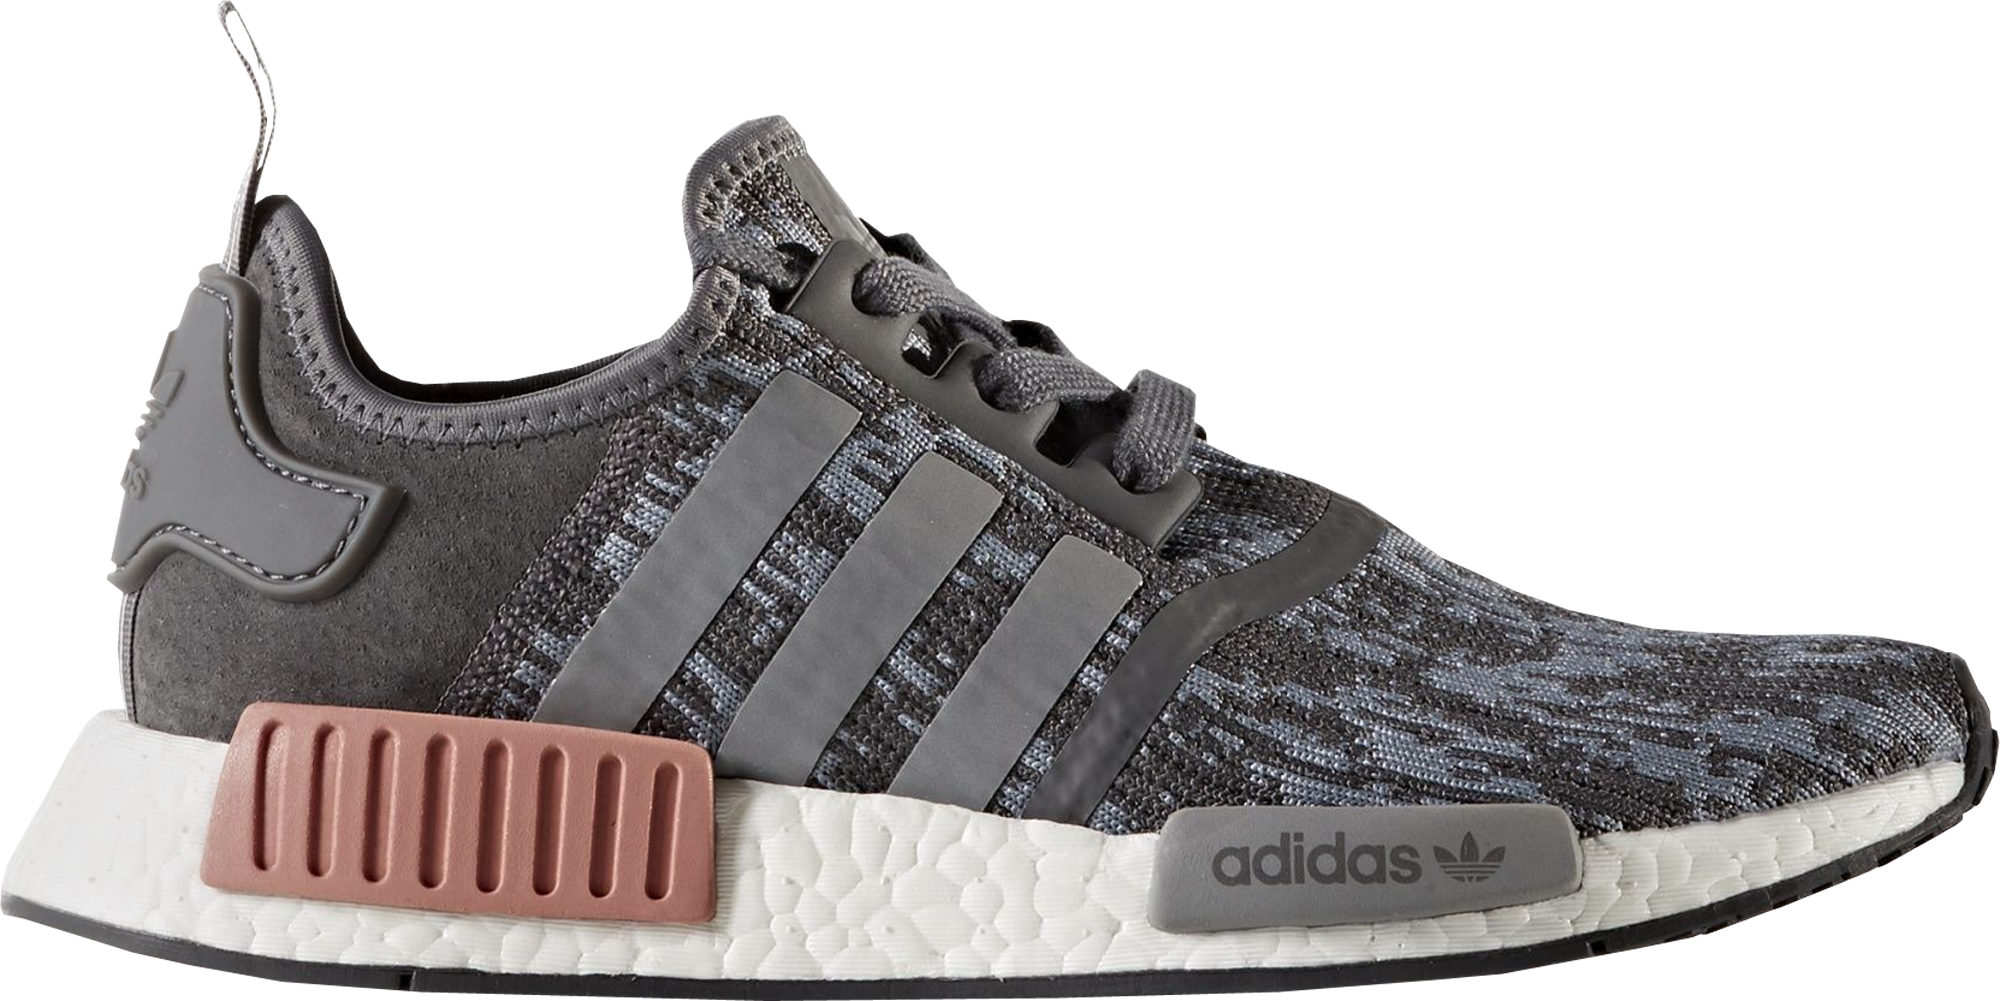 0fc820210 adidas shoes nmd grey and pink all pink adidas tennis shoes Equipped ...